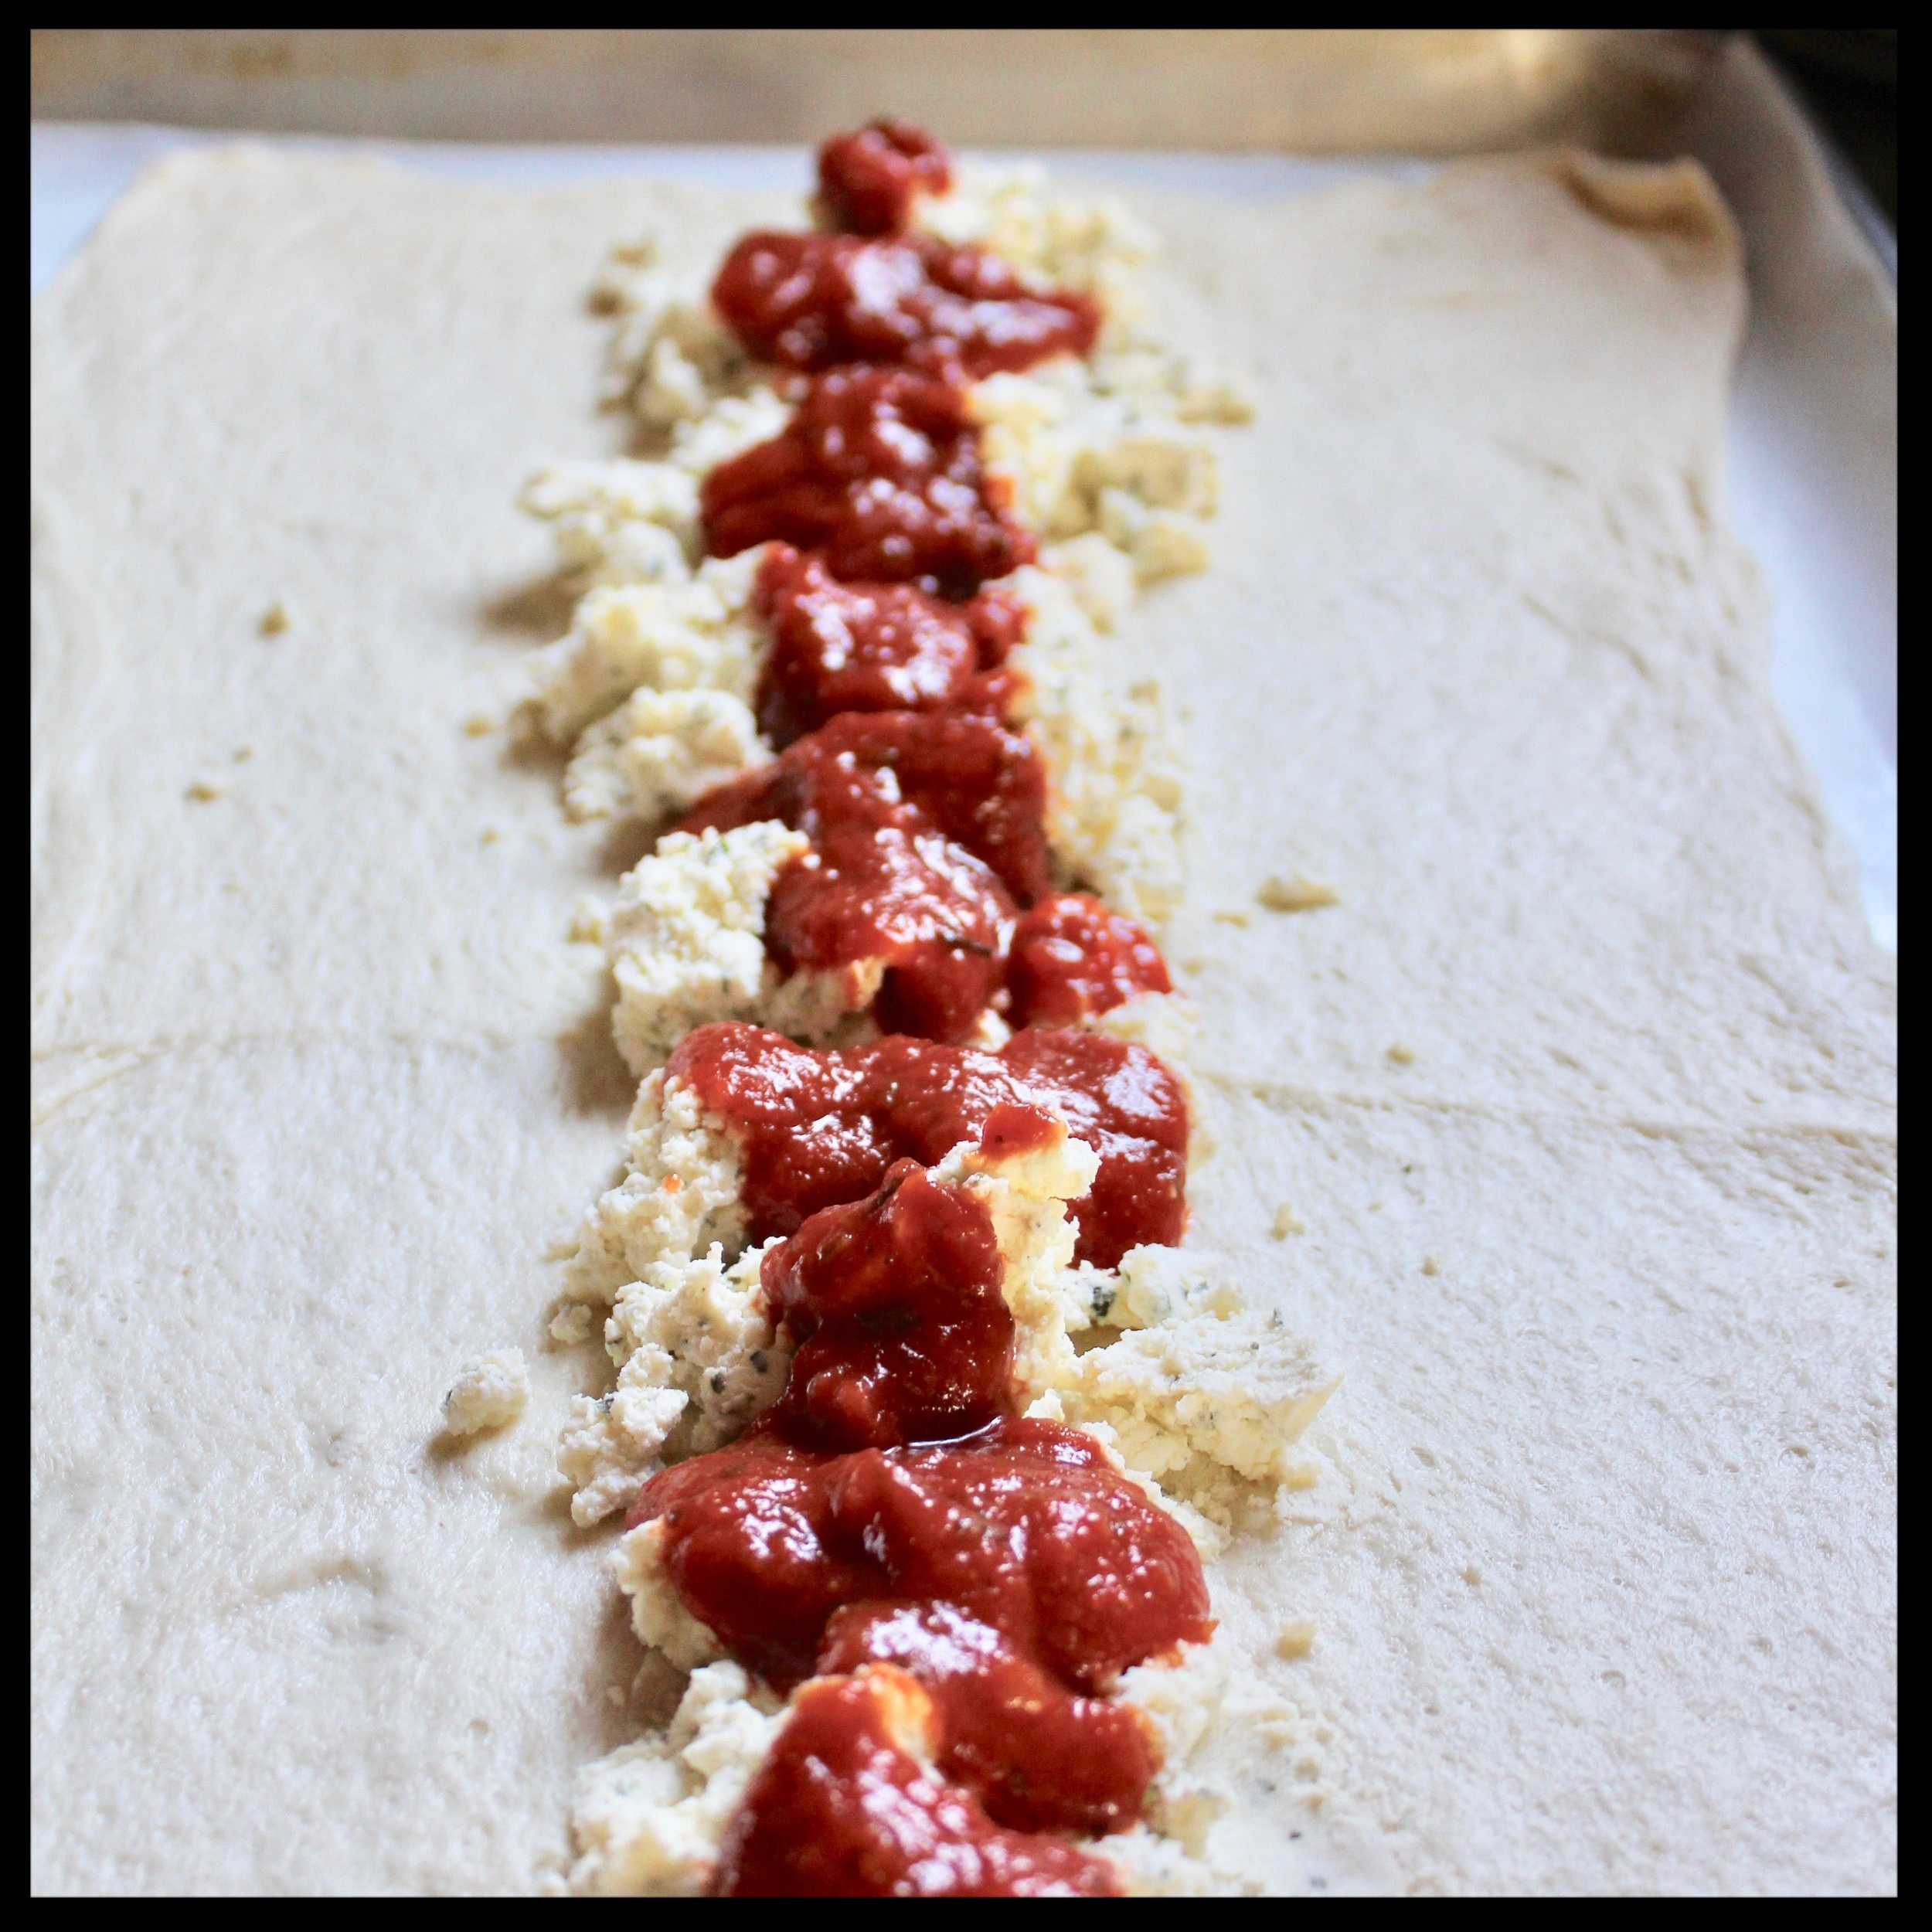 3.  Next add your favorite prepared marinara - roughly 1/2 cup spooned evenly over the cheese.